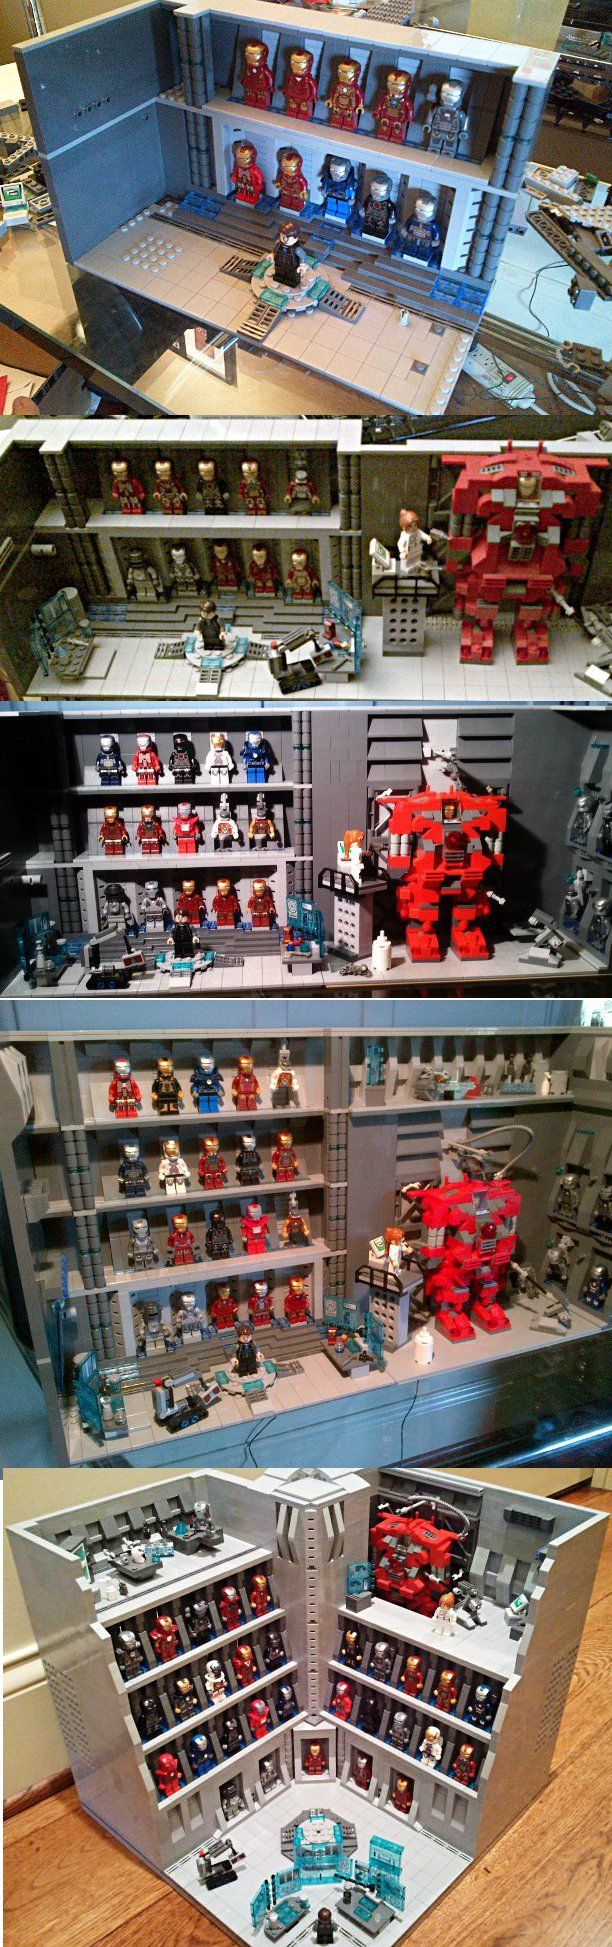 7 Best Wsi Images On Pinterest Anti Gravity Awesome Lego And Circuit Board Additionally Iron Man Tony Stark House Minecraft Industries Armory Hall Of Armor Http